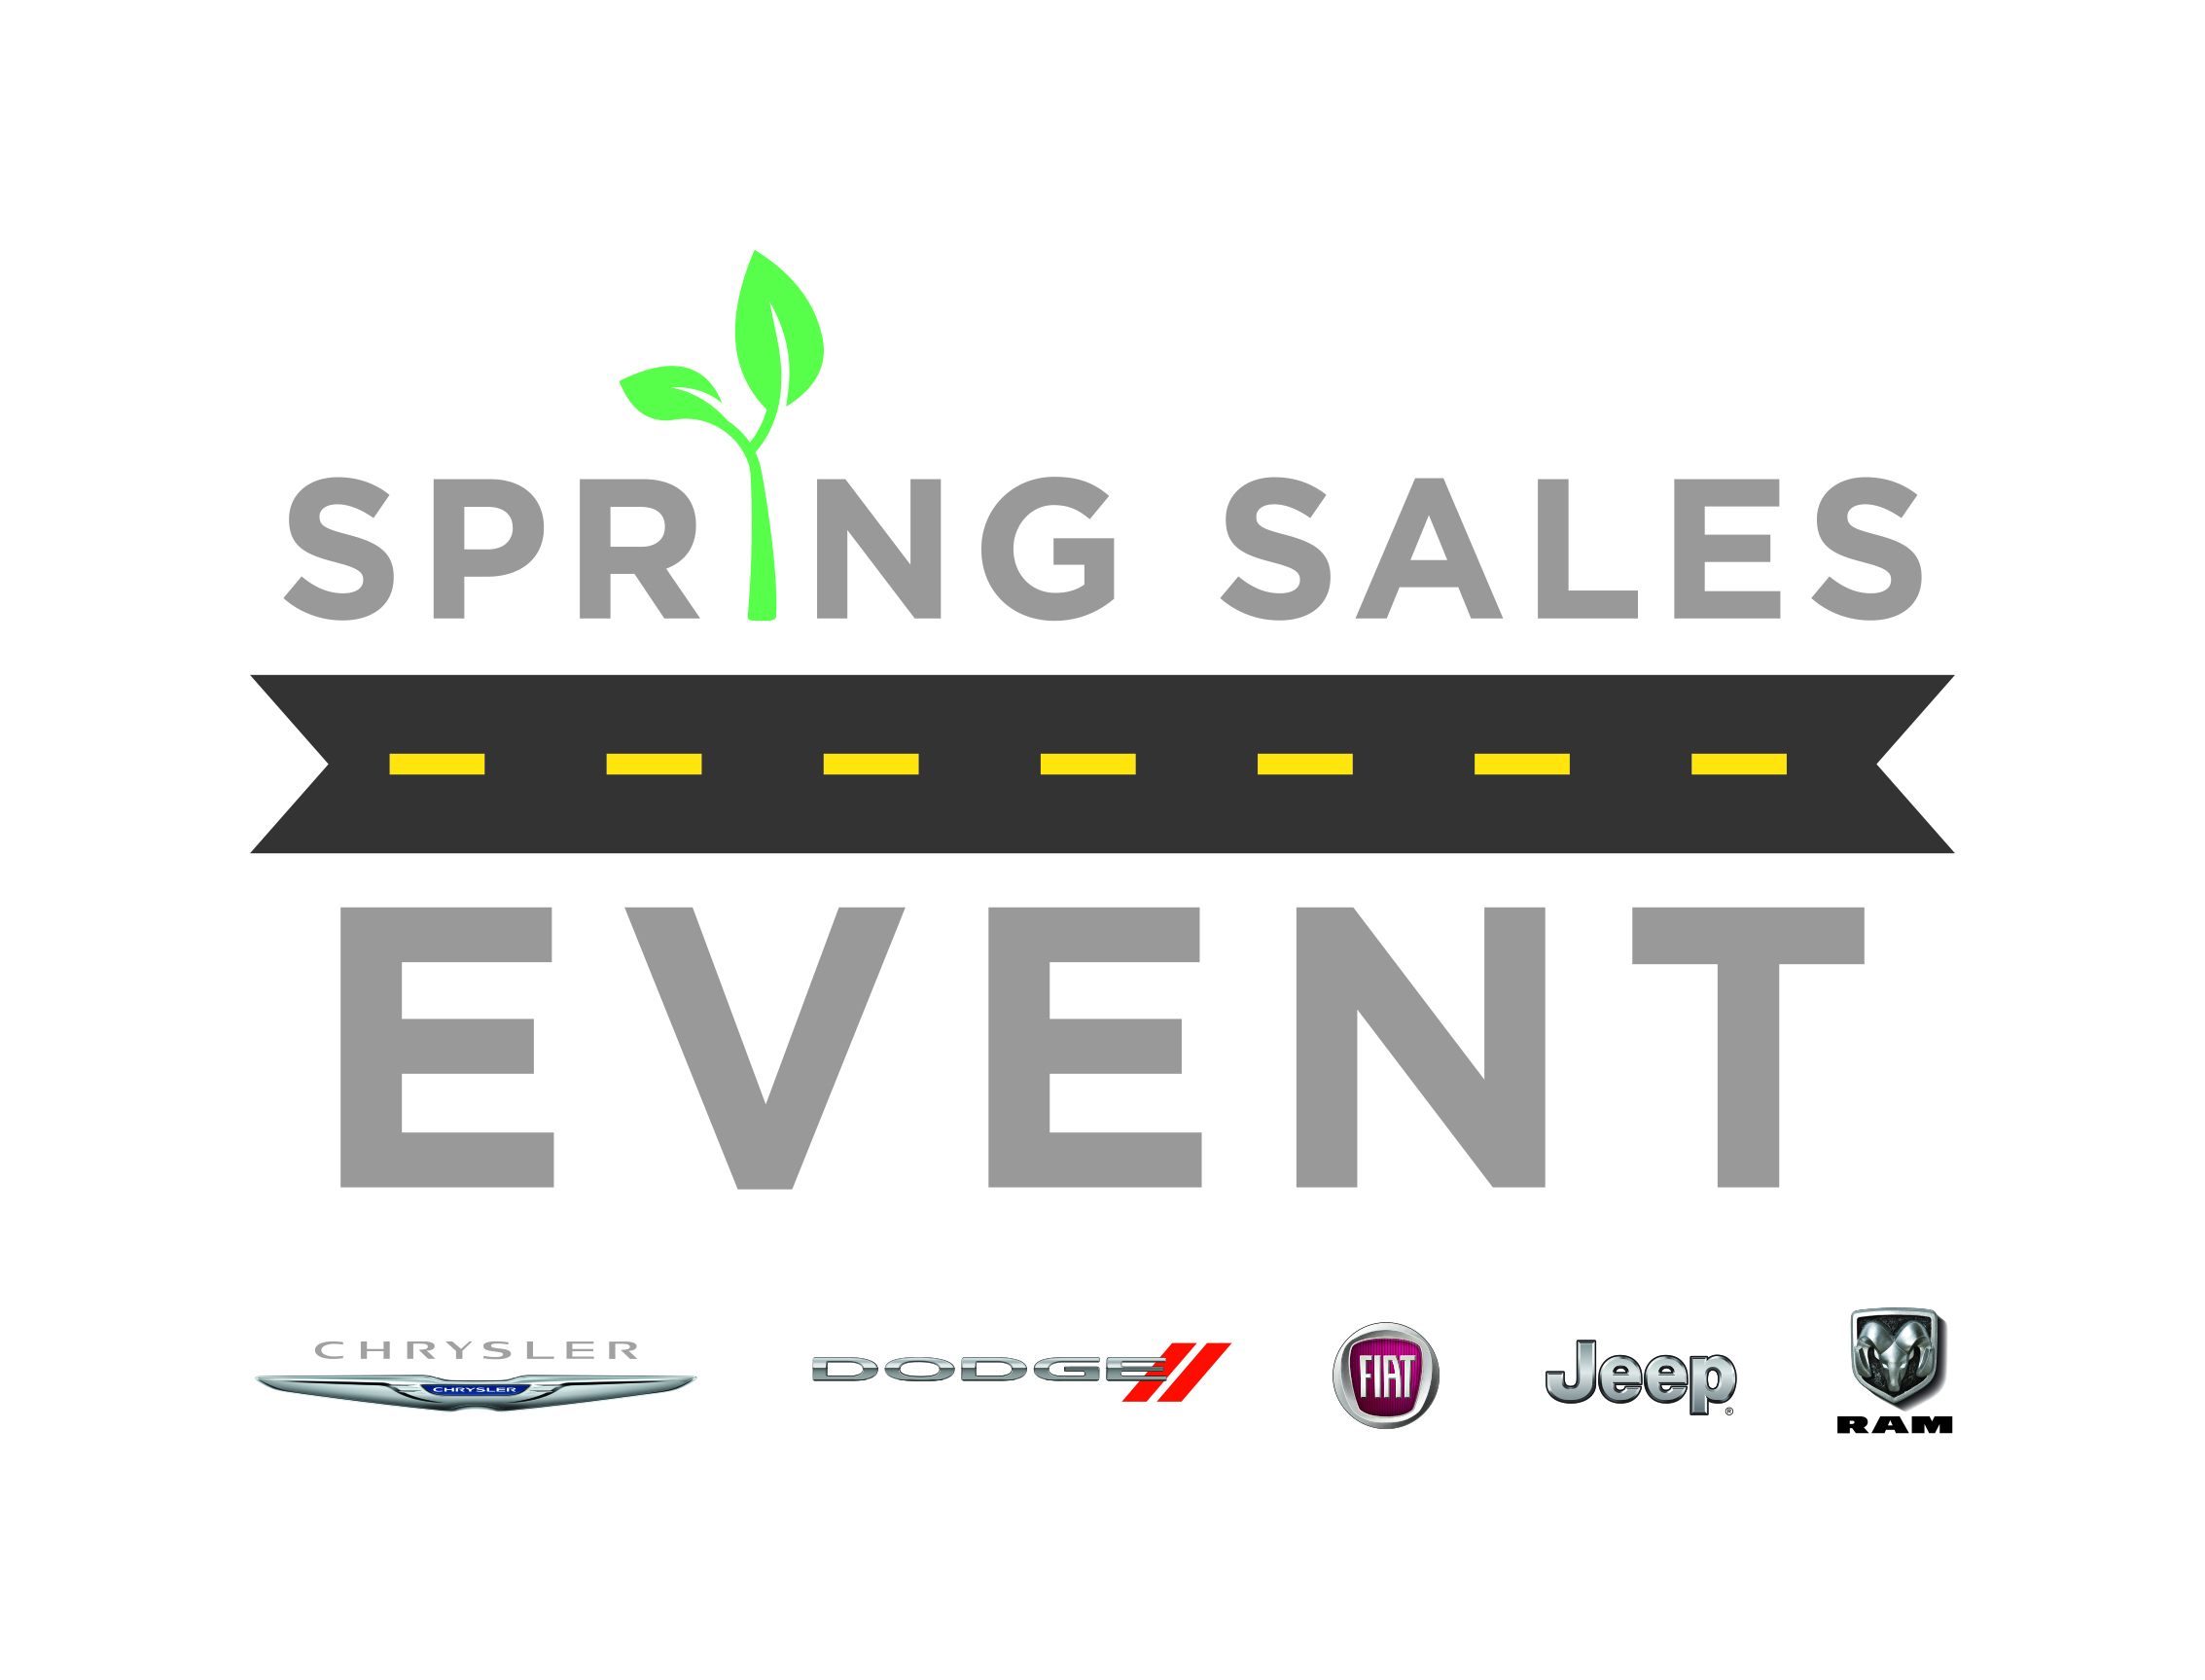 Spring Sales Event in Mansfield, OH